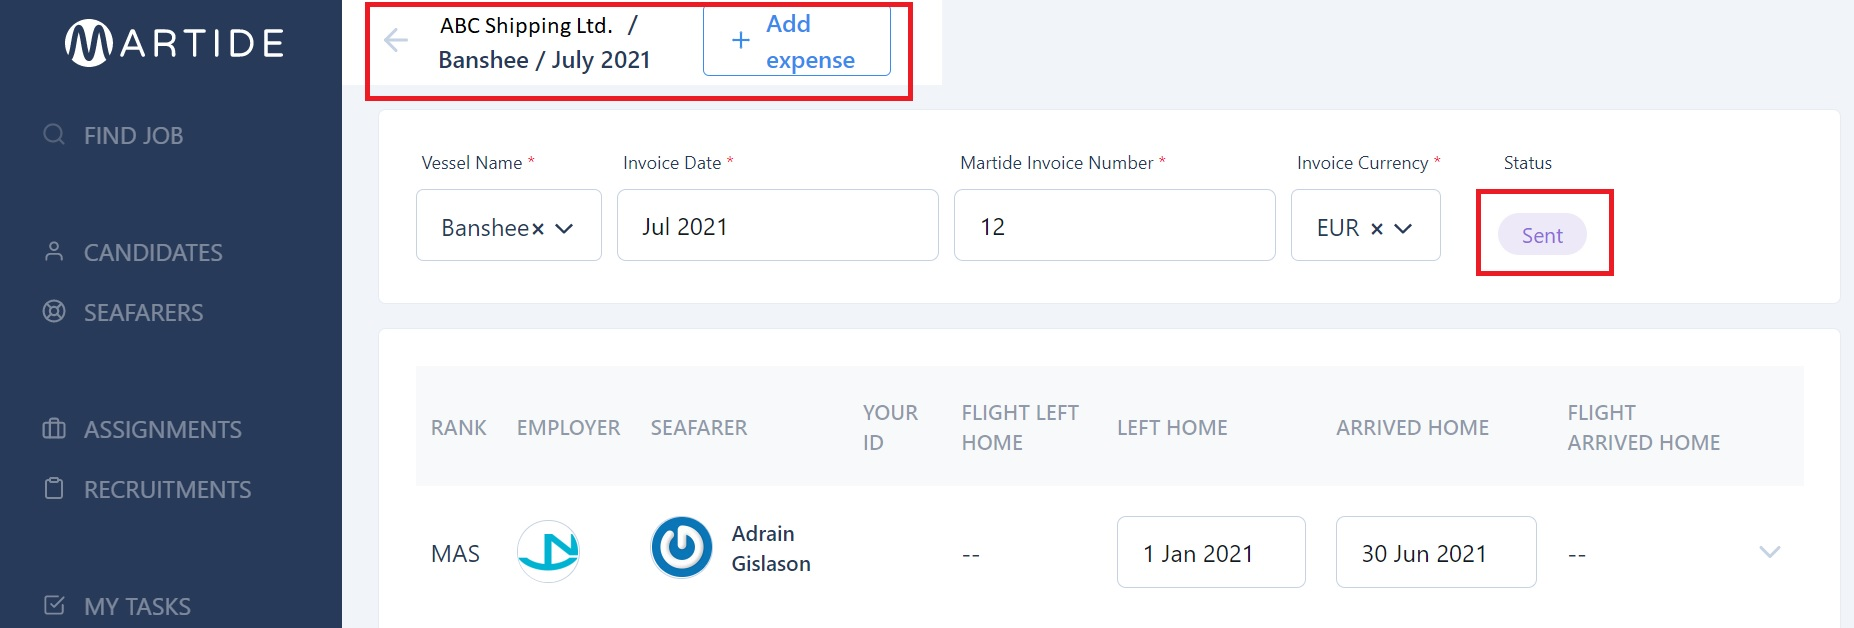 screenshot showing the add expense button.